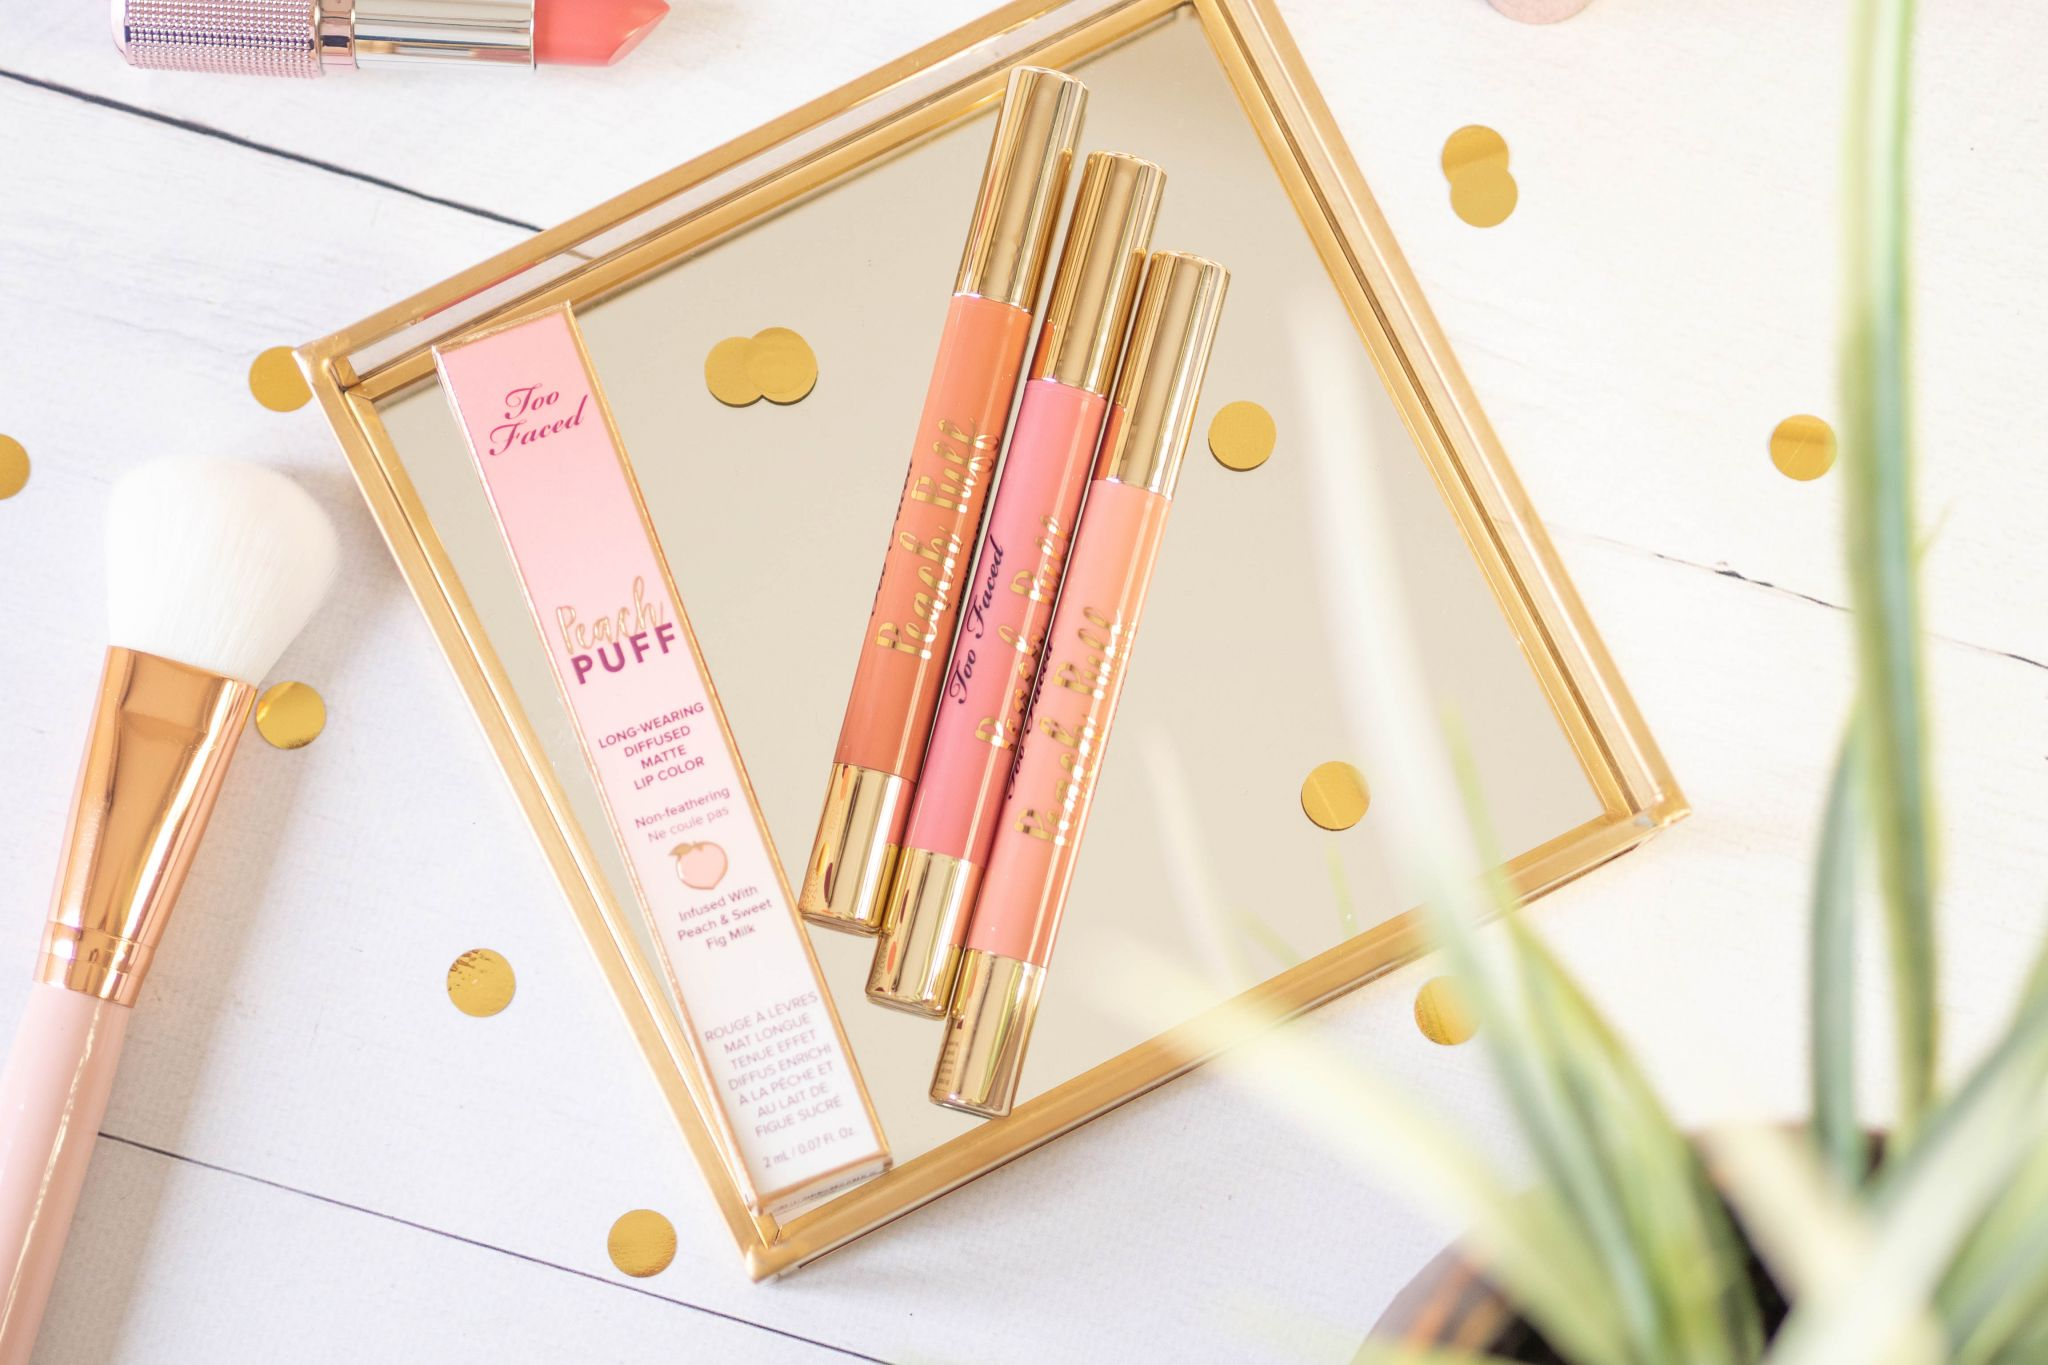 Too Faced -'Peach Puff' Lip Colour Review